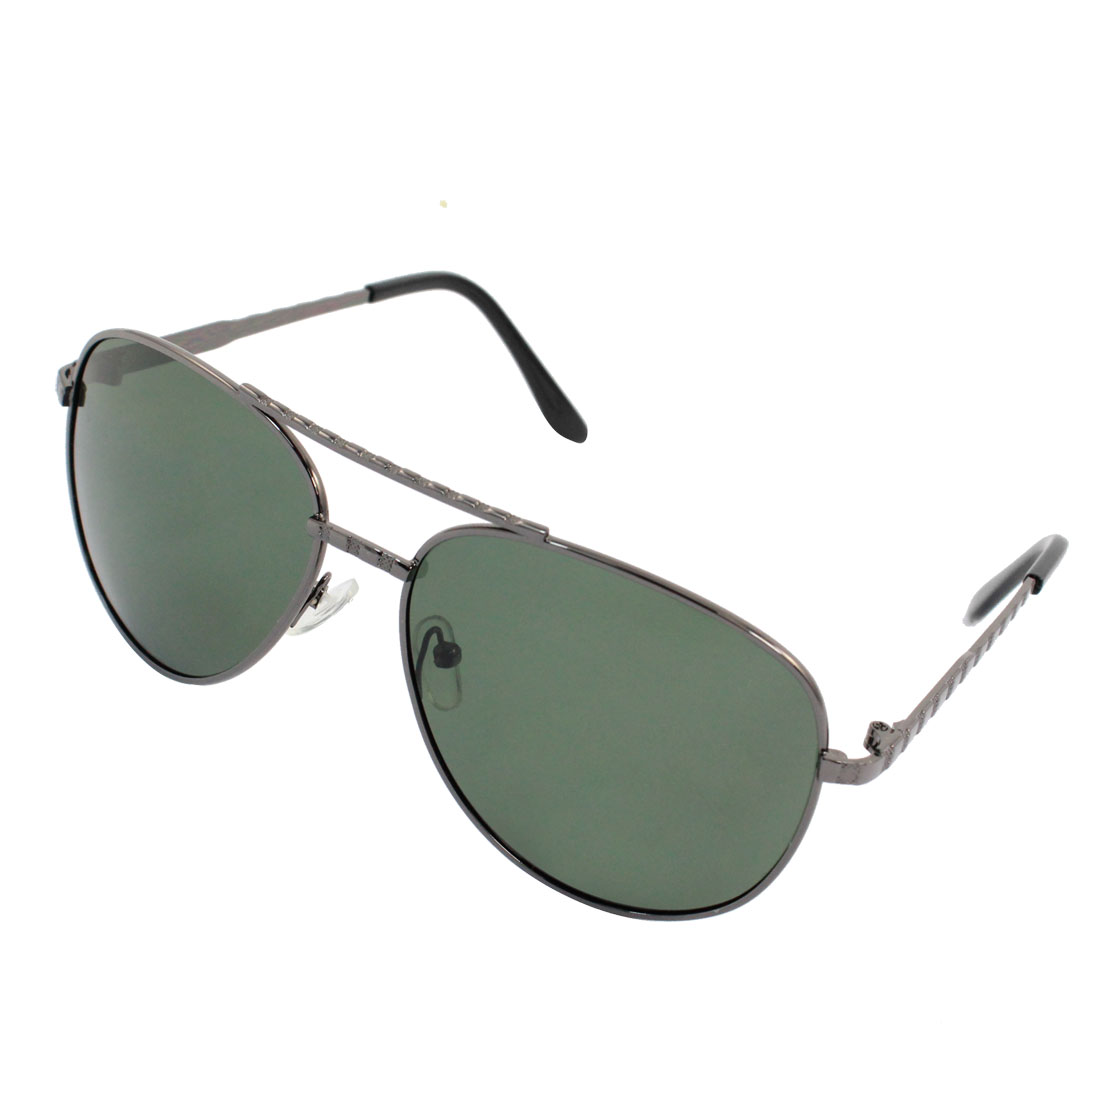 Gray Dual Bridge Metal Full Frame Polarized Glasses Sunglasses w Case